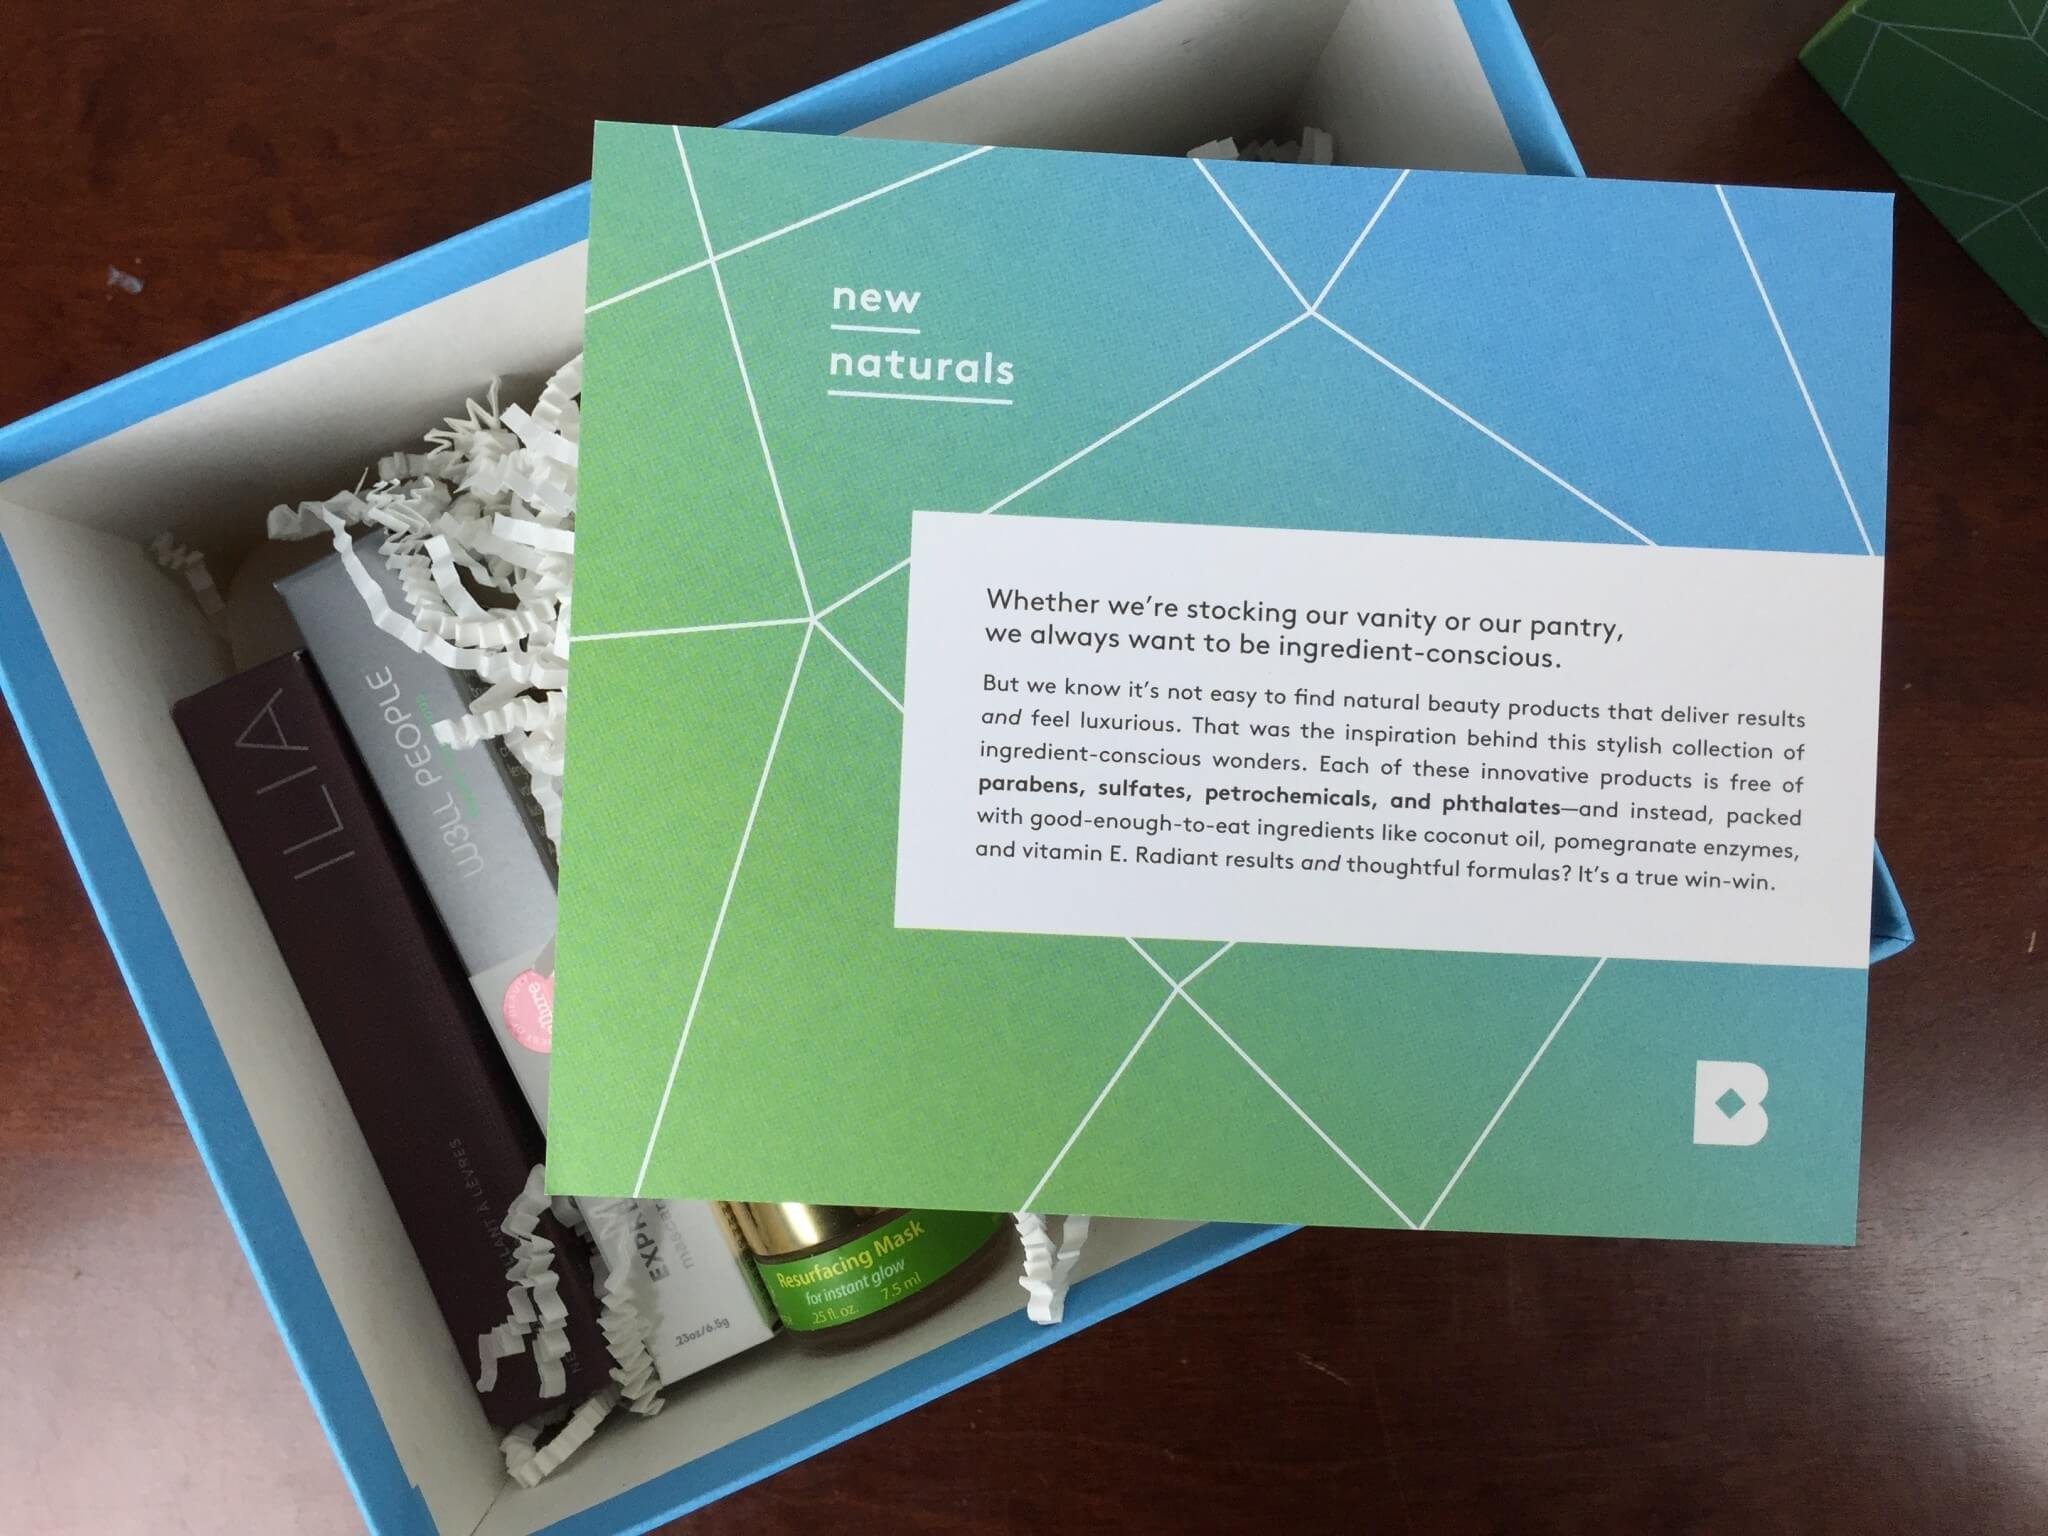 Birchbox New Naturals Box April 2016 unboxing